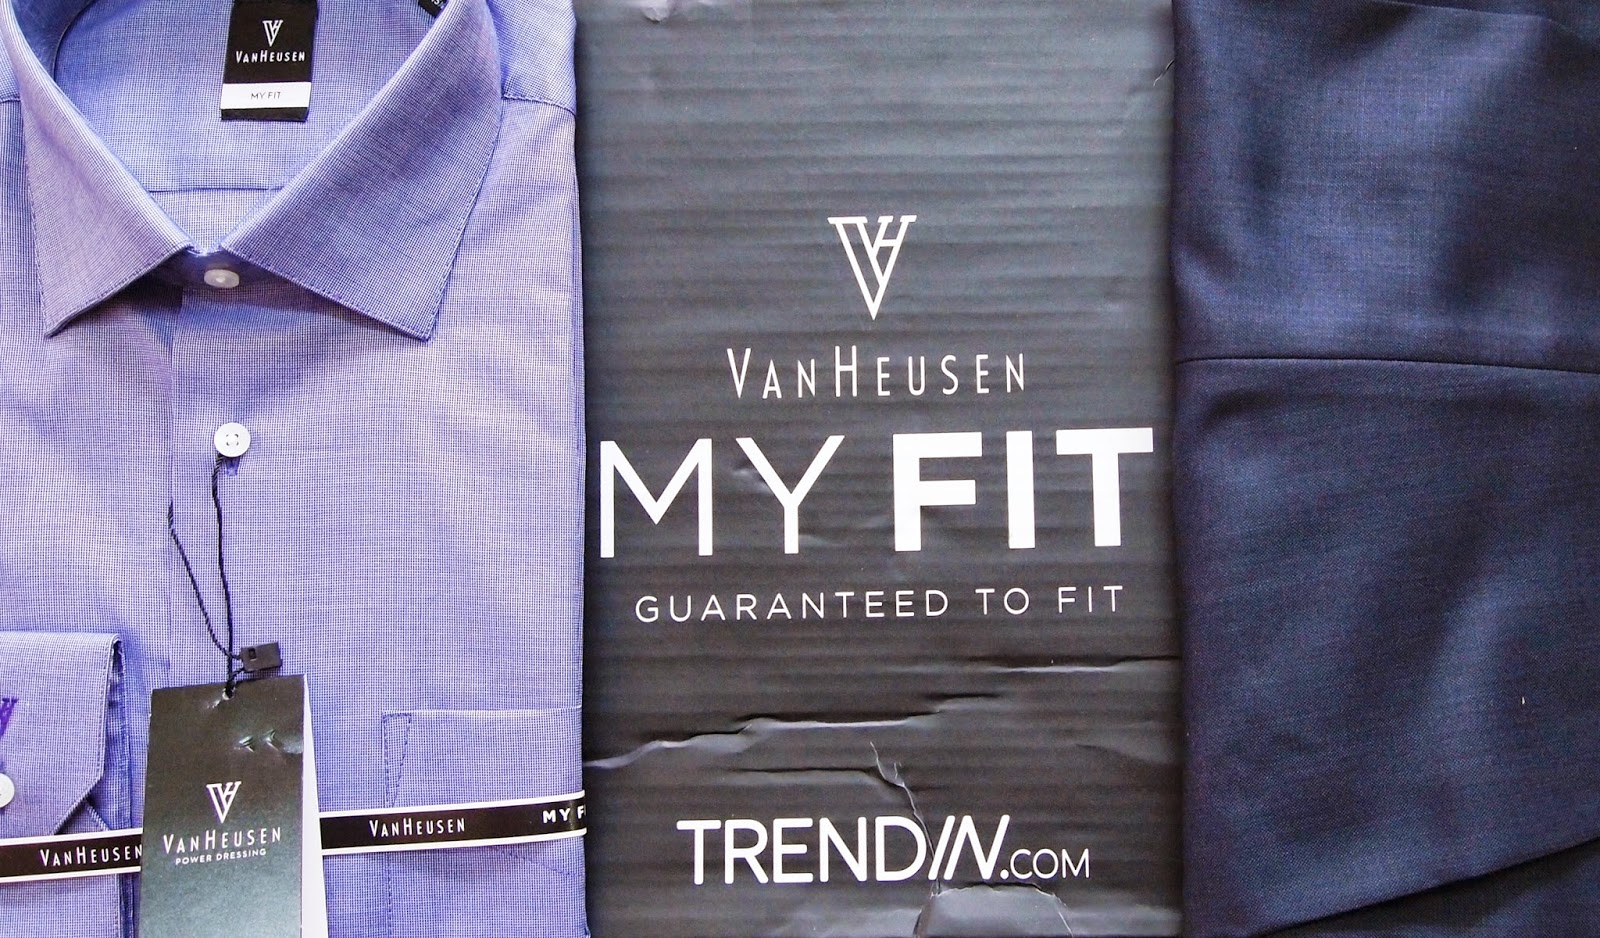 Van Heusen My Fit